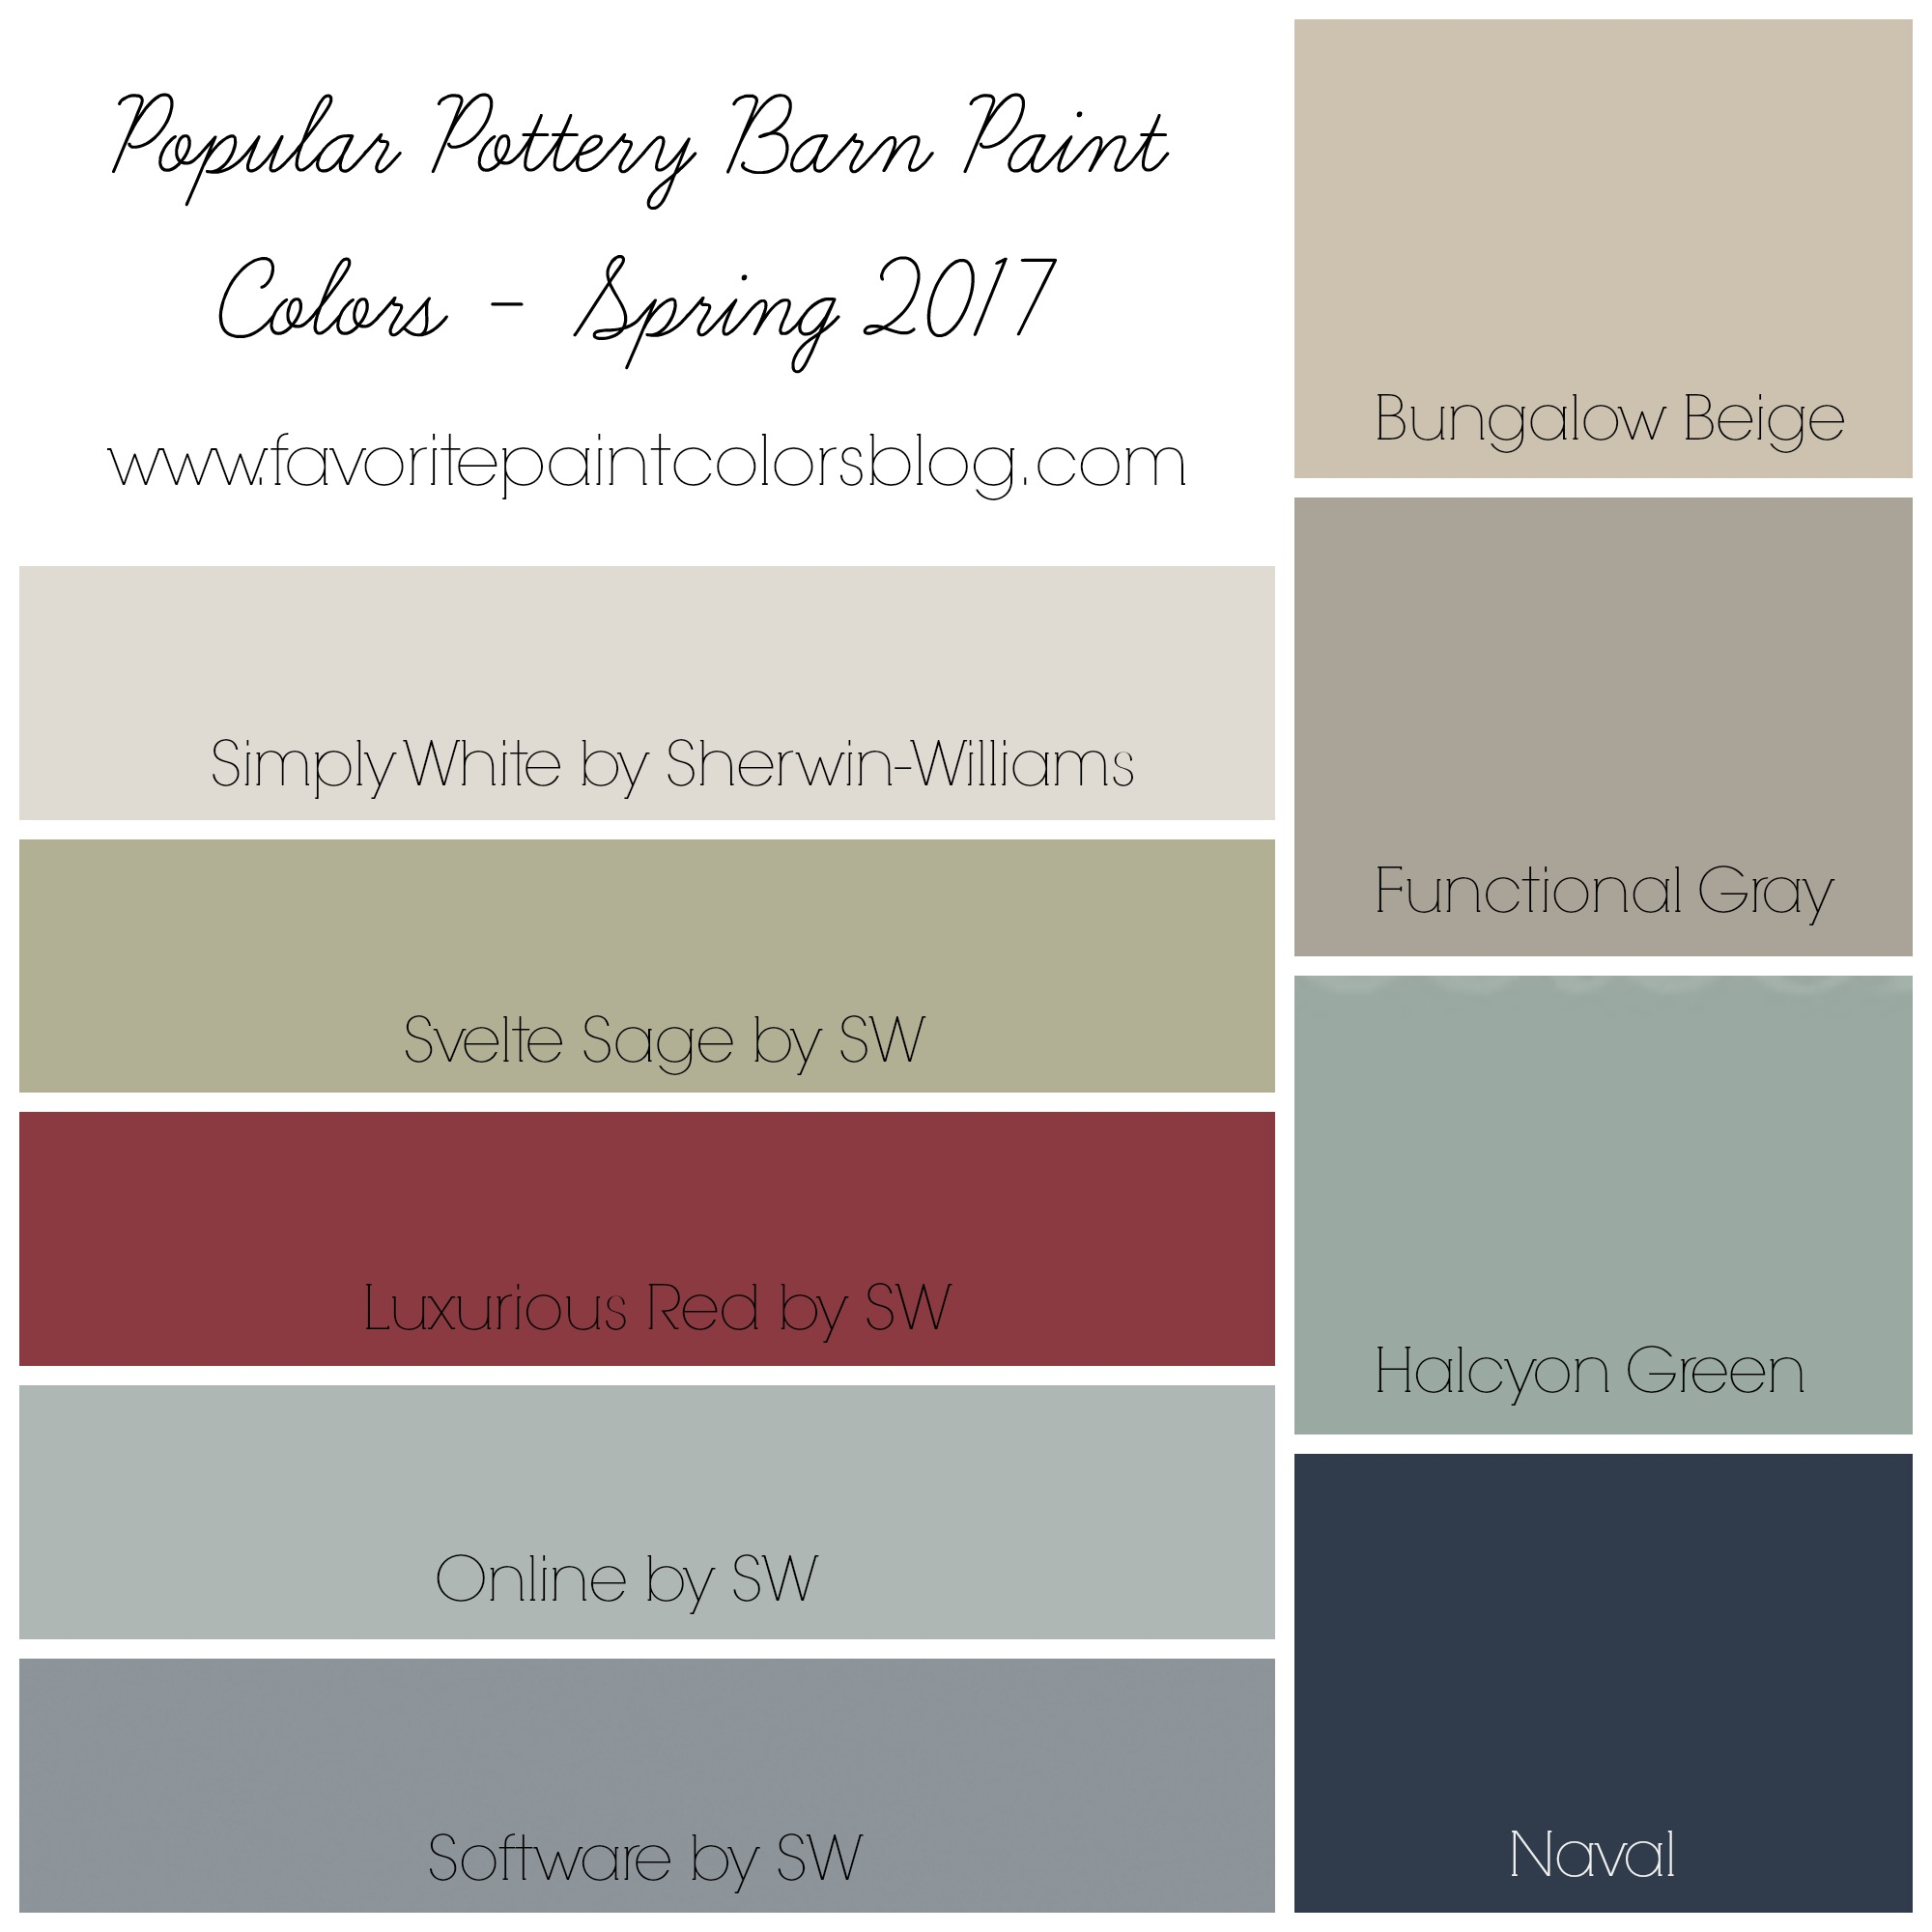 Popular Pottery Barn Paint Colors